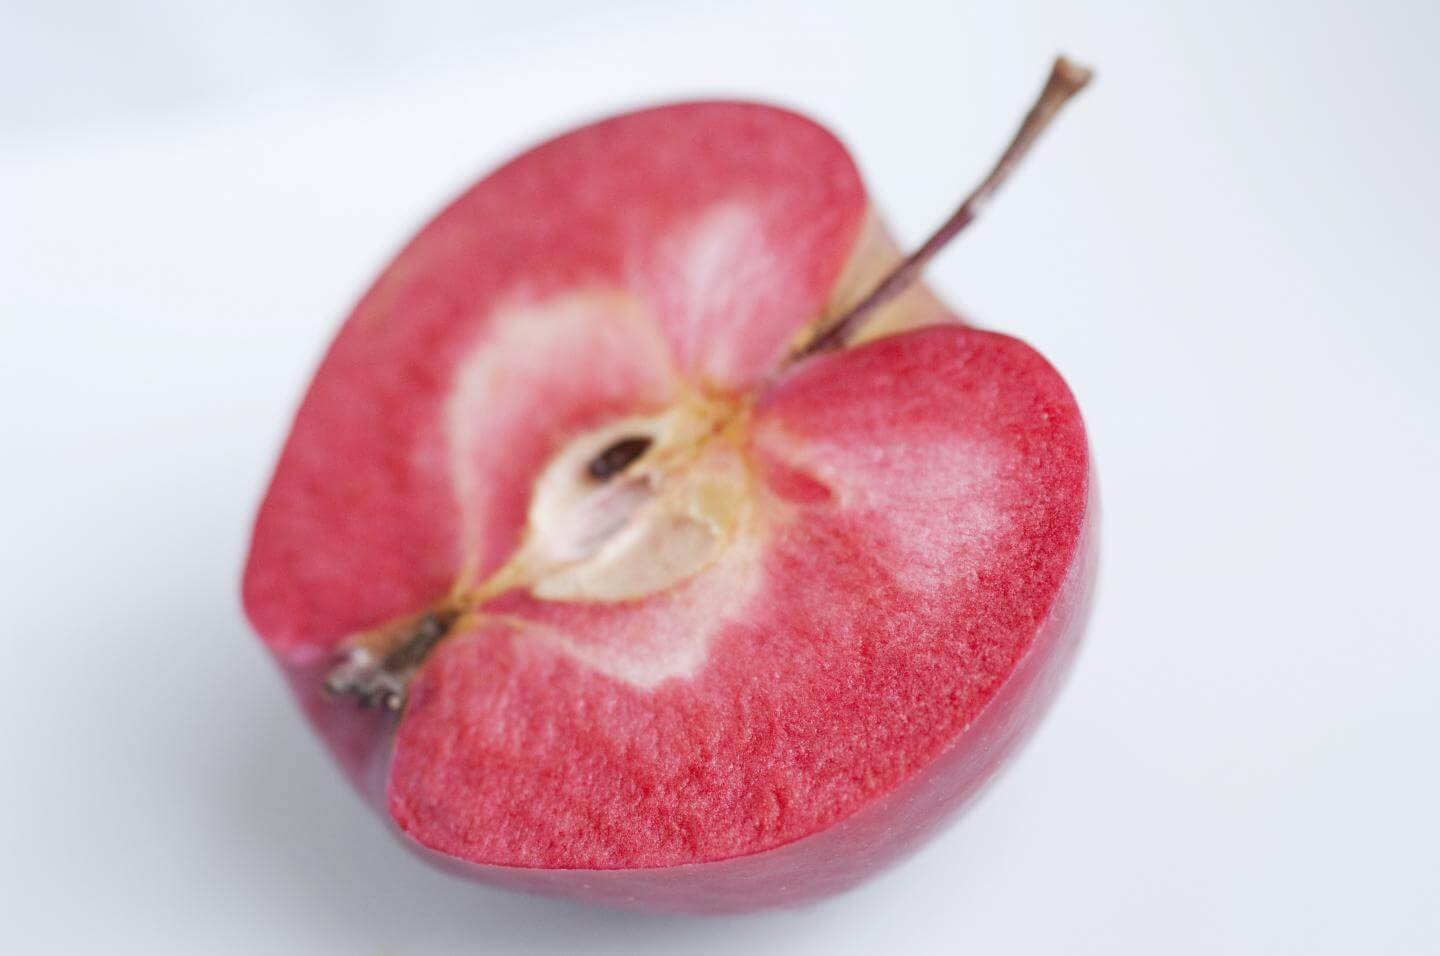 red flesh apple hi res